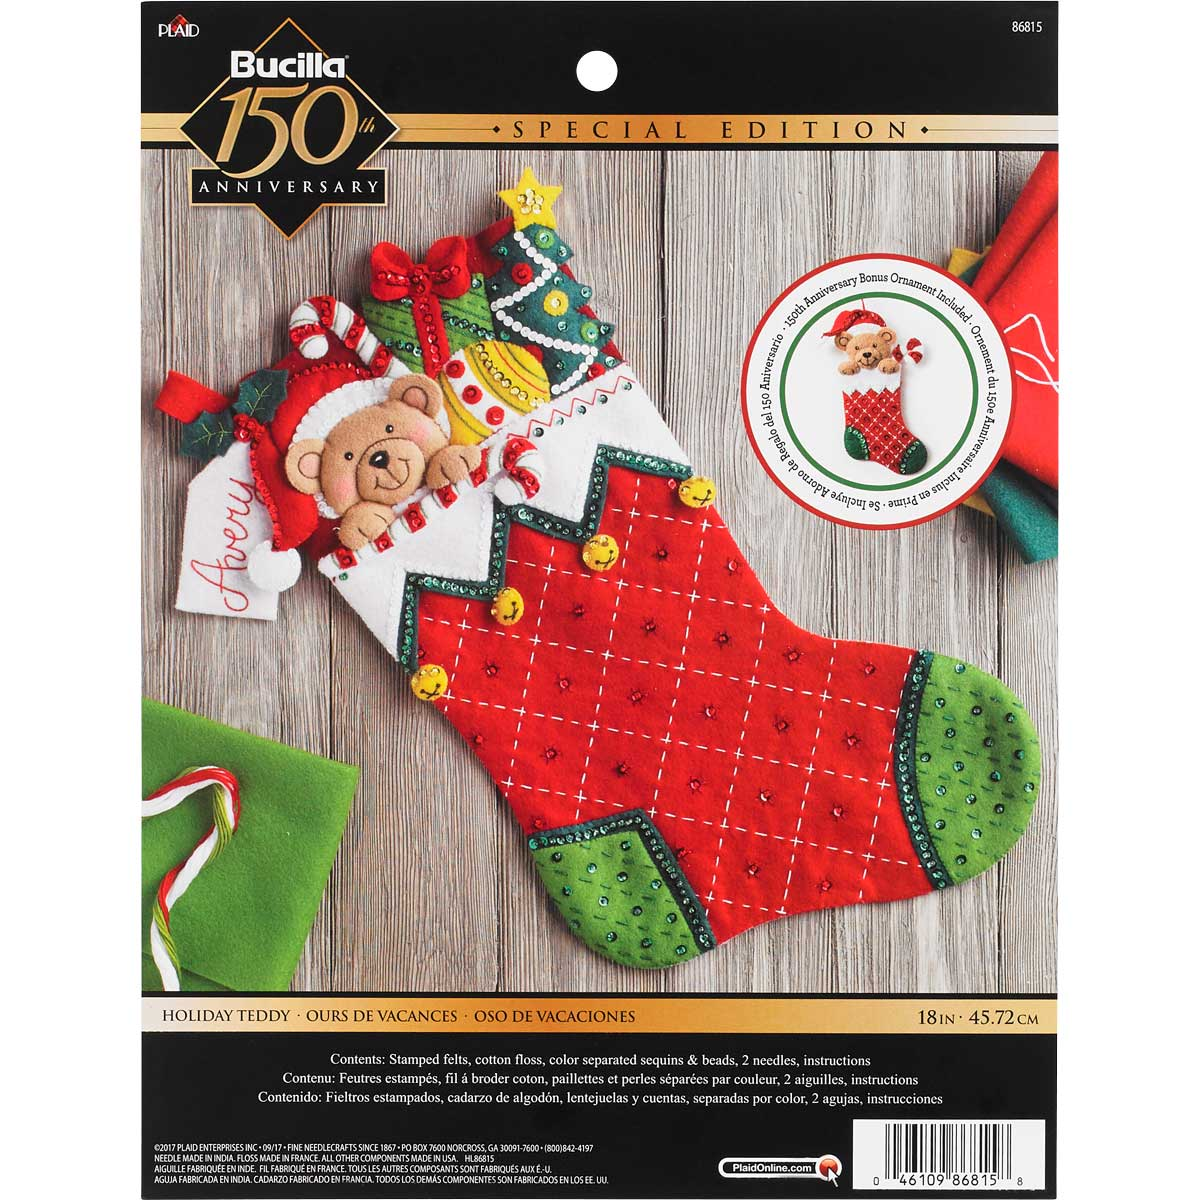 Bucilla ® Seasonal - Felt - Stocking Kits - Holiday Teddy - 86815